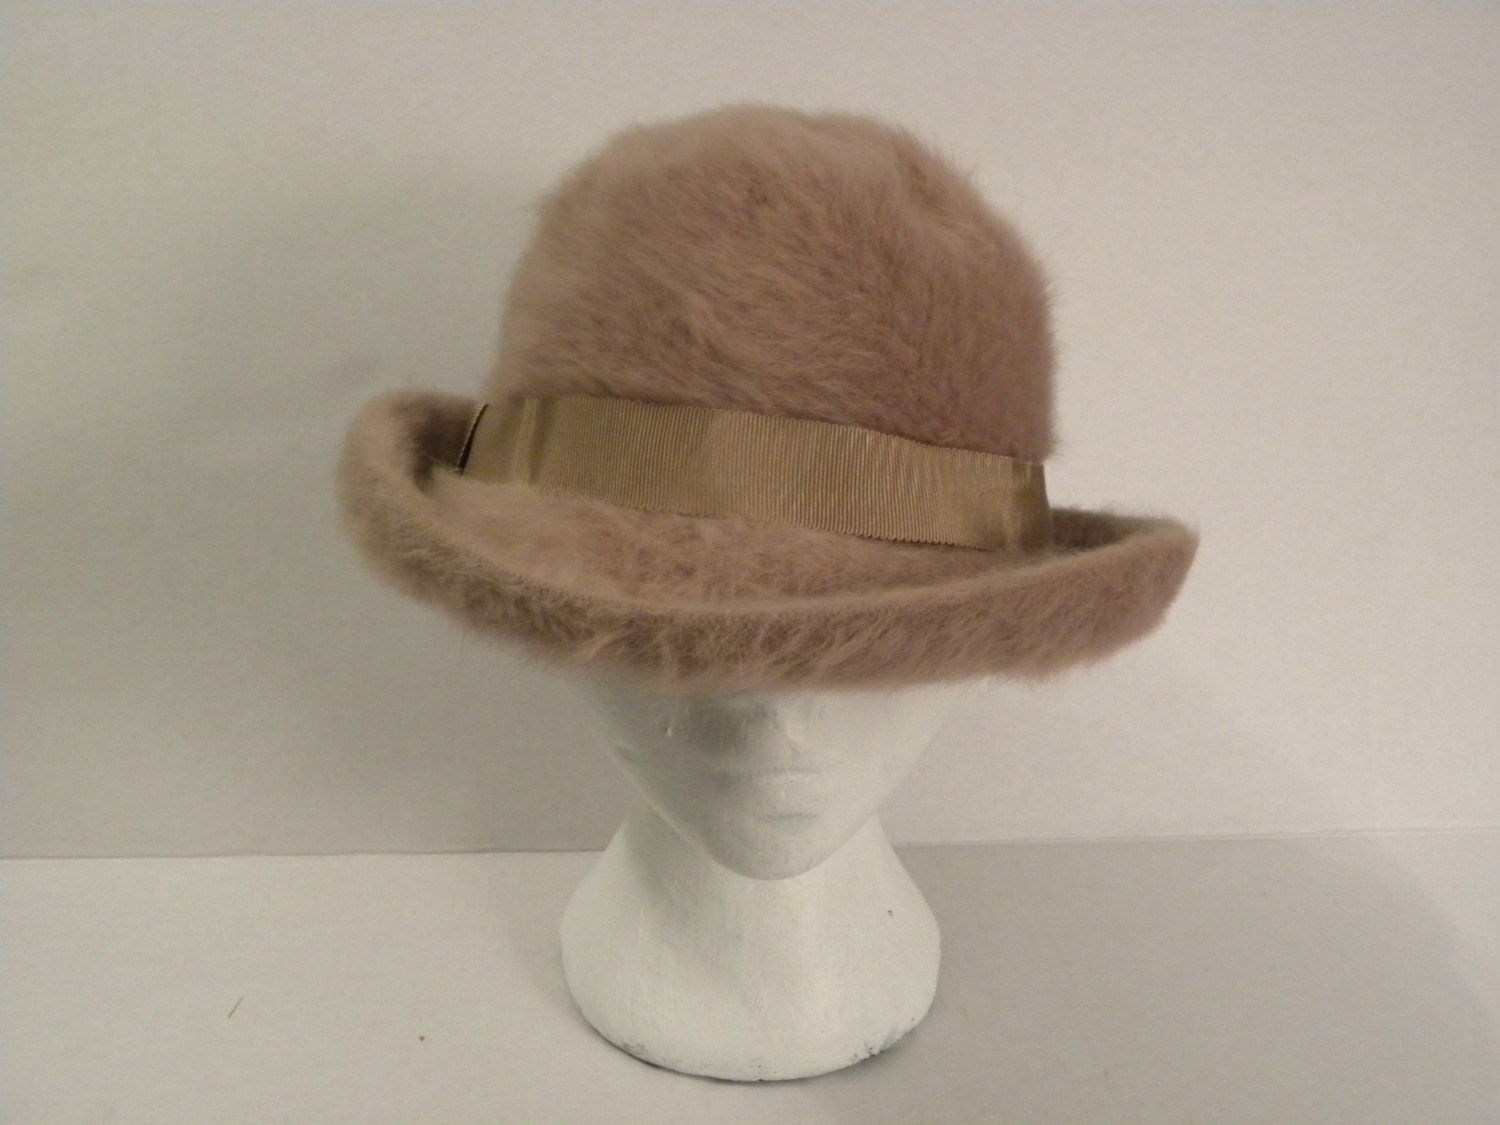 SOLD-1970's Fuzzy Fedora - KaysCuriosities